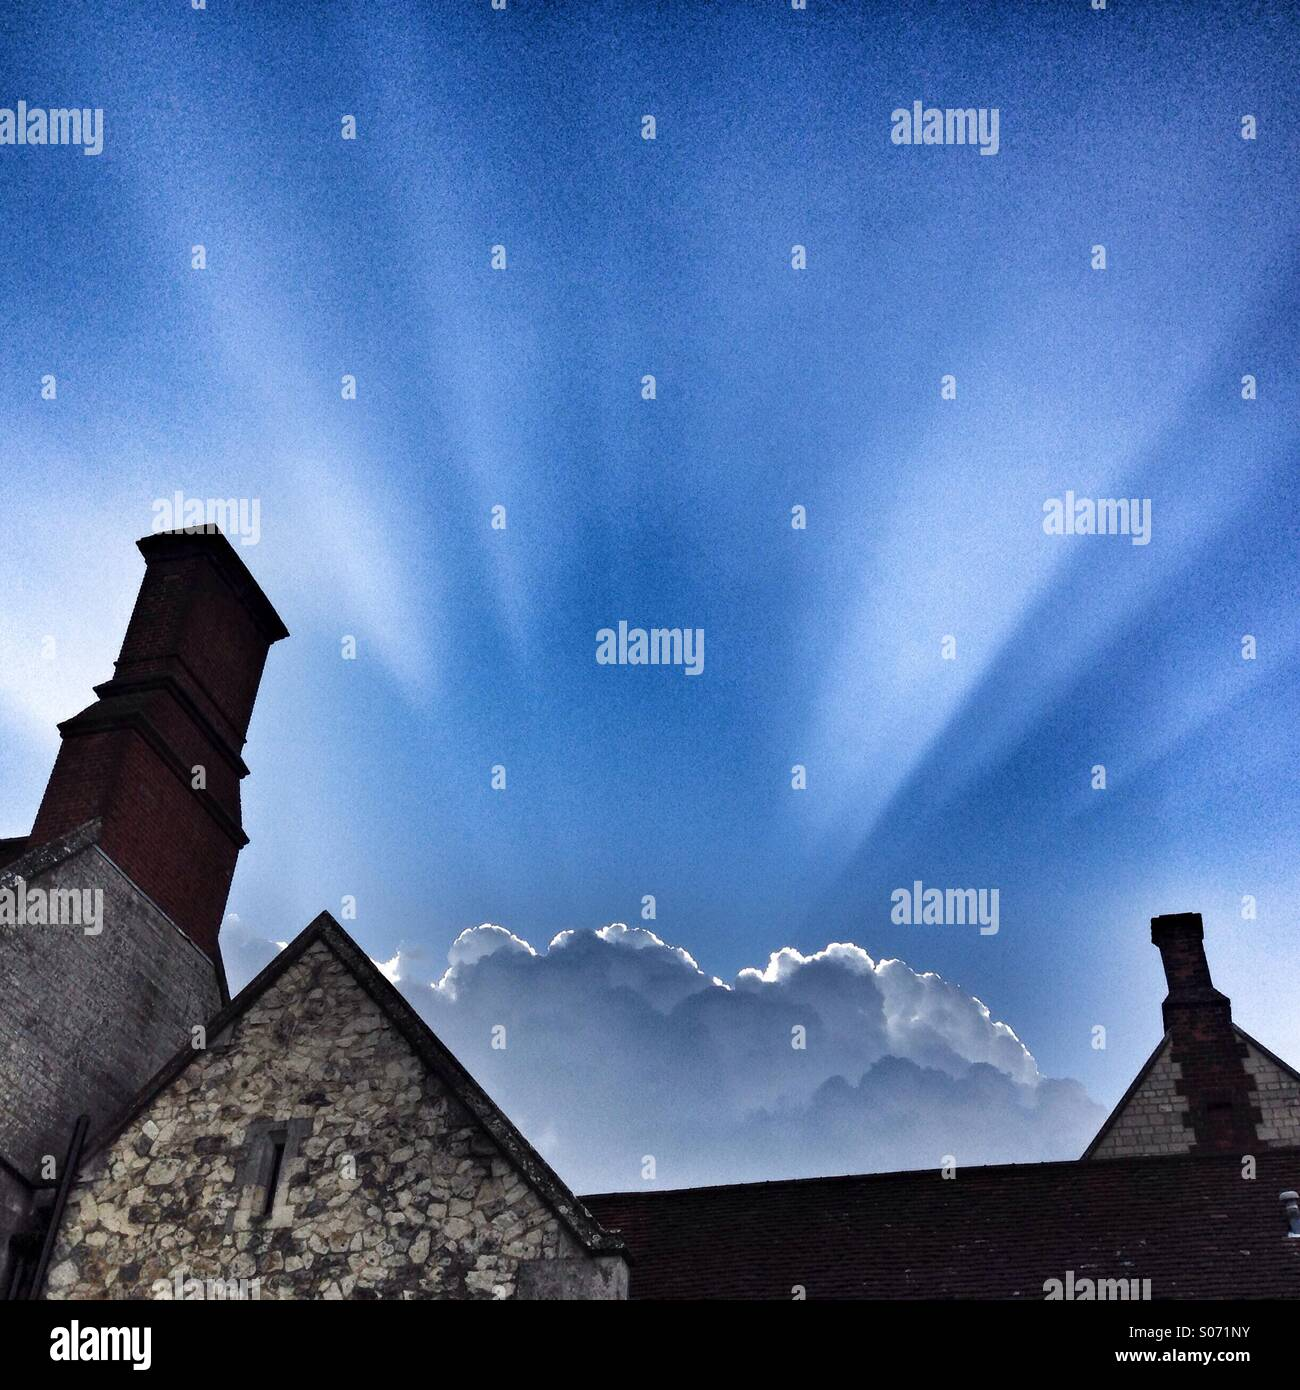 Amazing silver lining cloud on stormy day Stock Photo